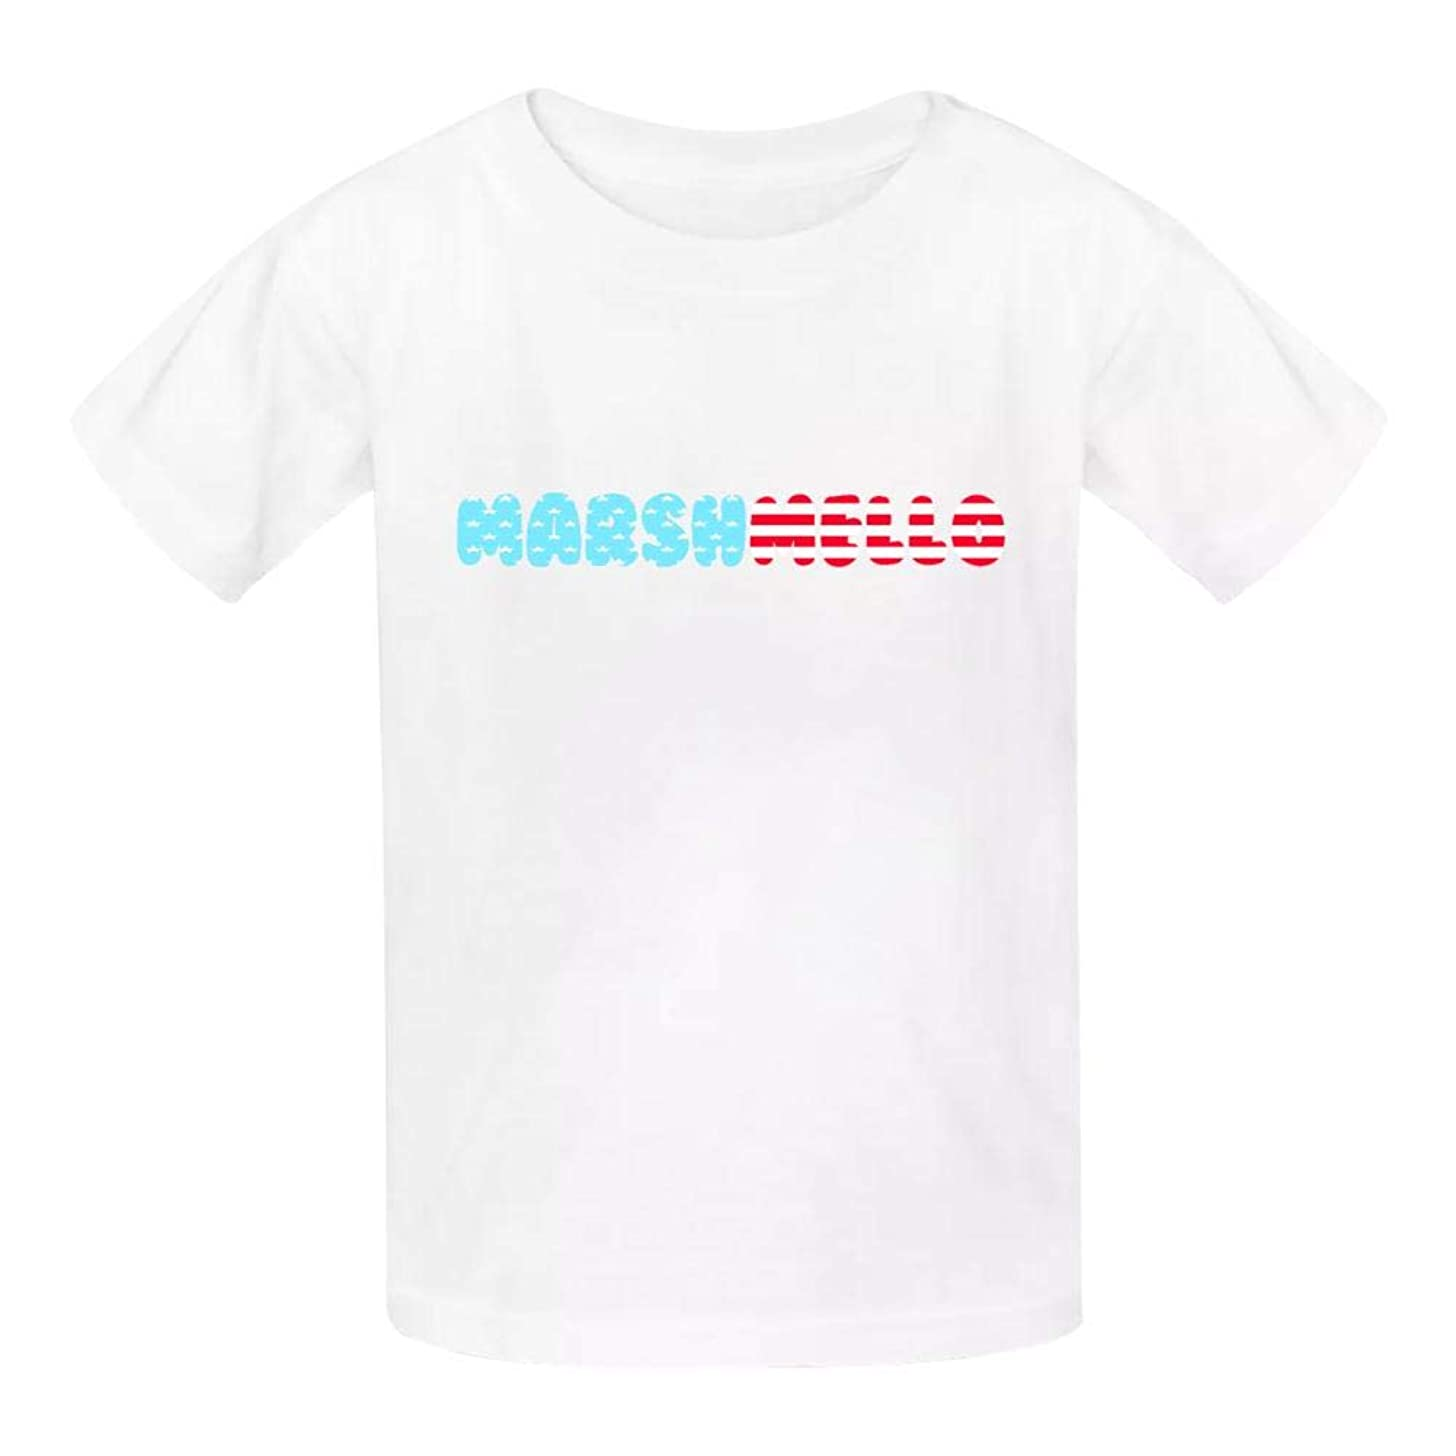 TIFOUTY Youth 4th of July Marsh-Mello New Merch 3D Print Crew Neck Short Sleeve T-Shirts Casual Soft Tee